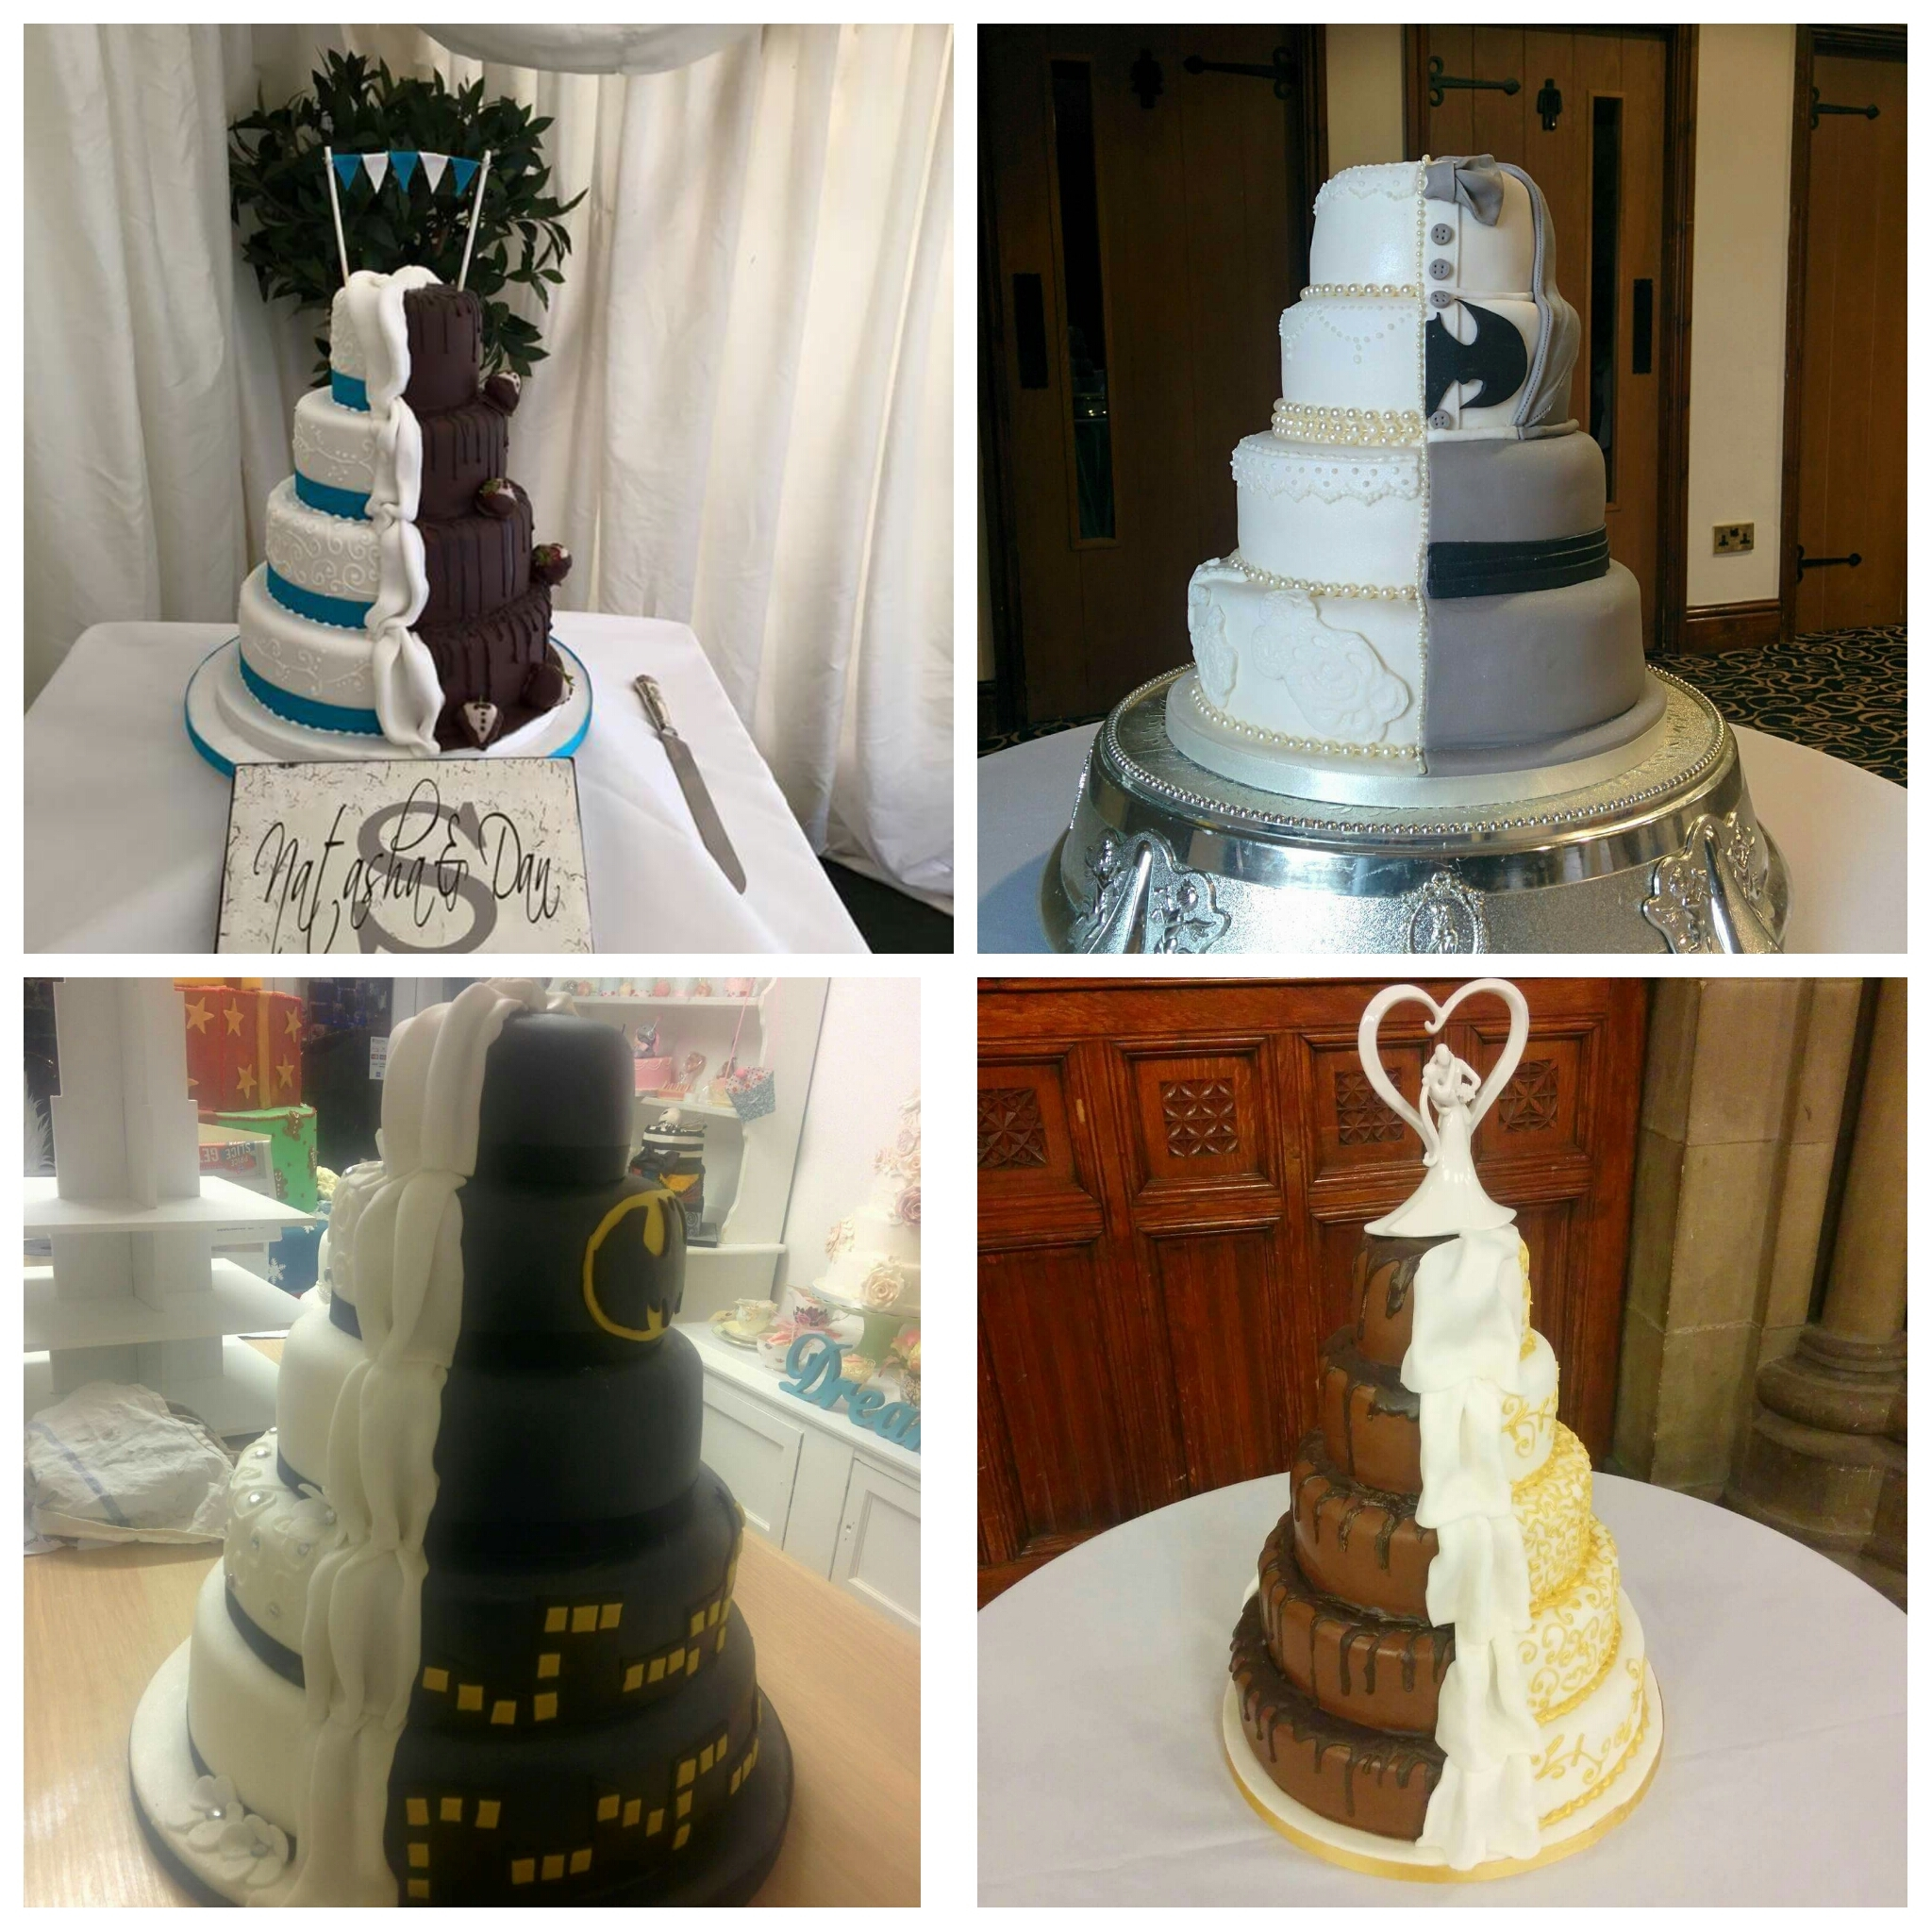 Rise of the 50/50 wedding cakes